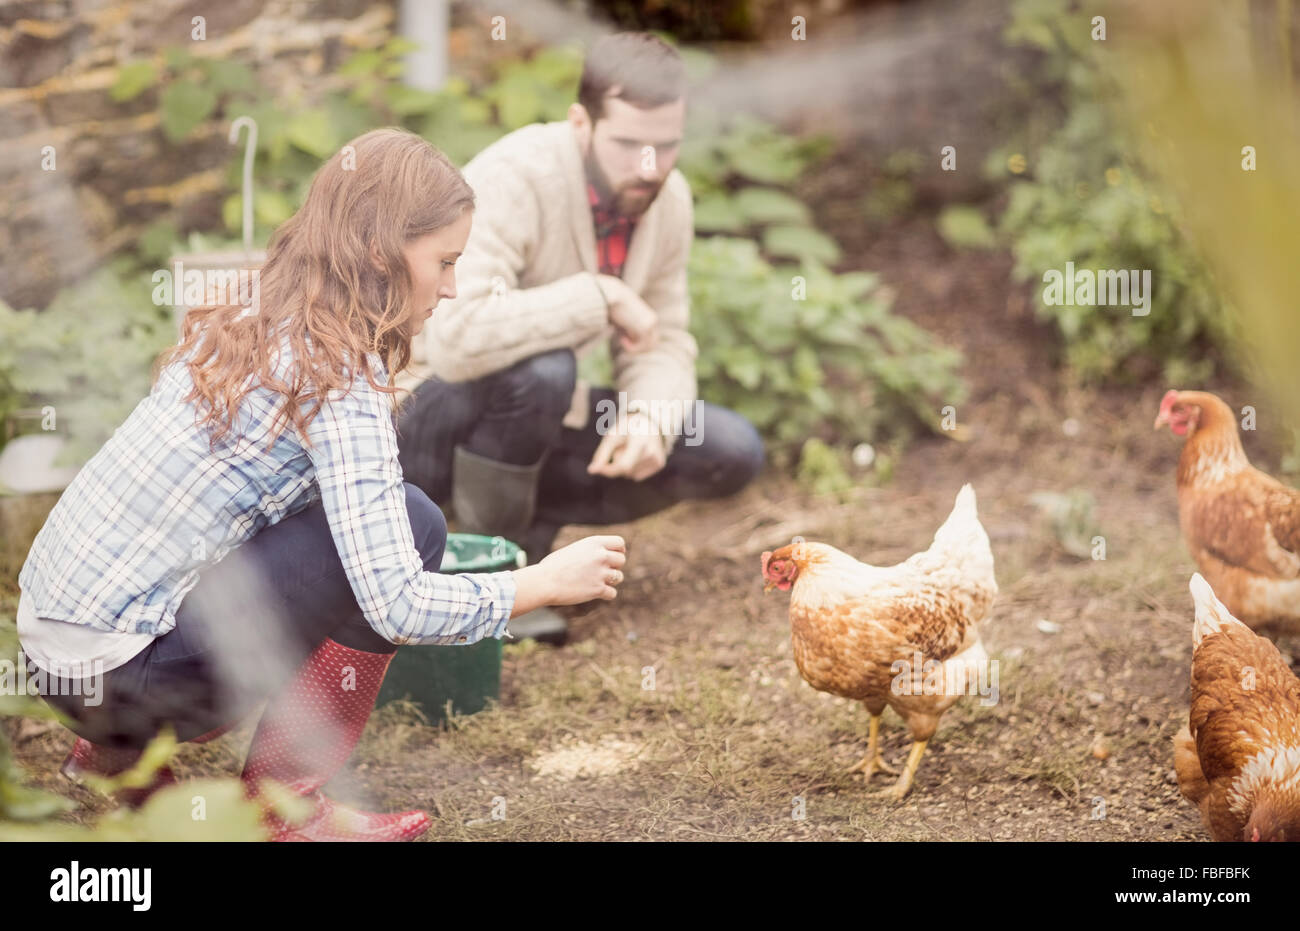 Couple feeding chicken together - Stock Image